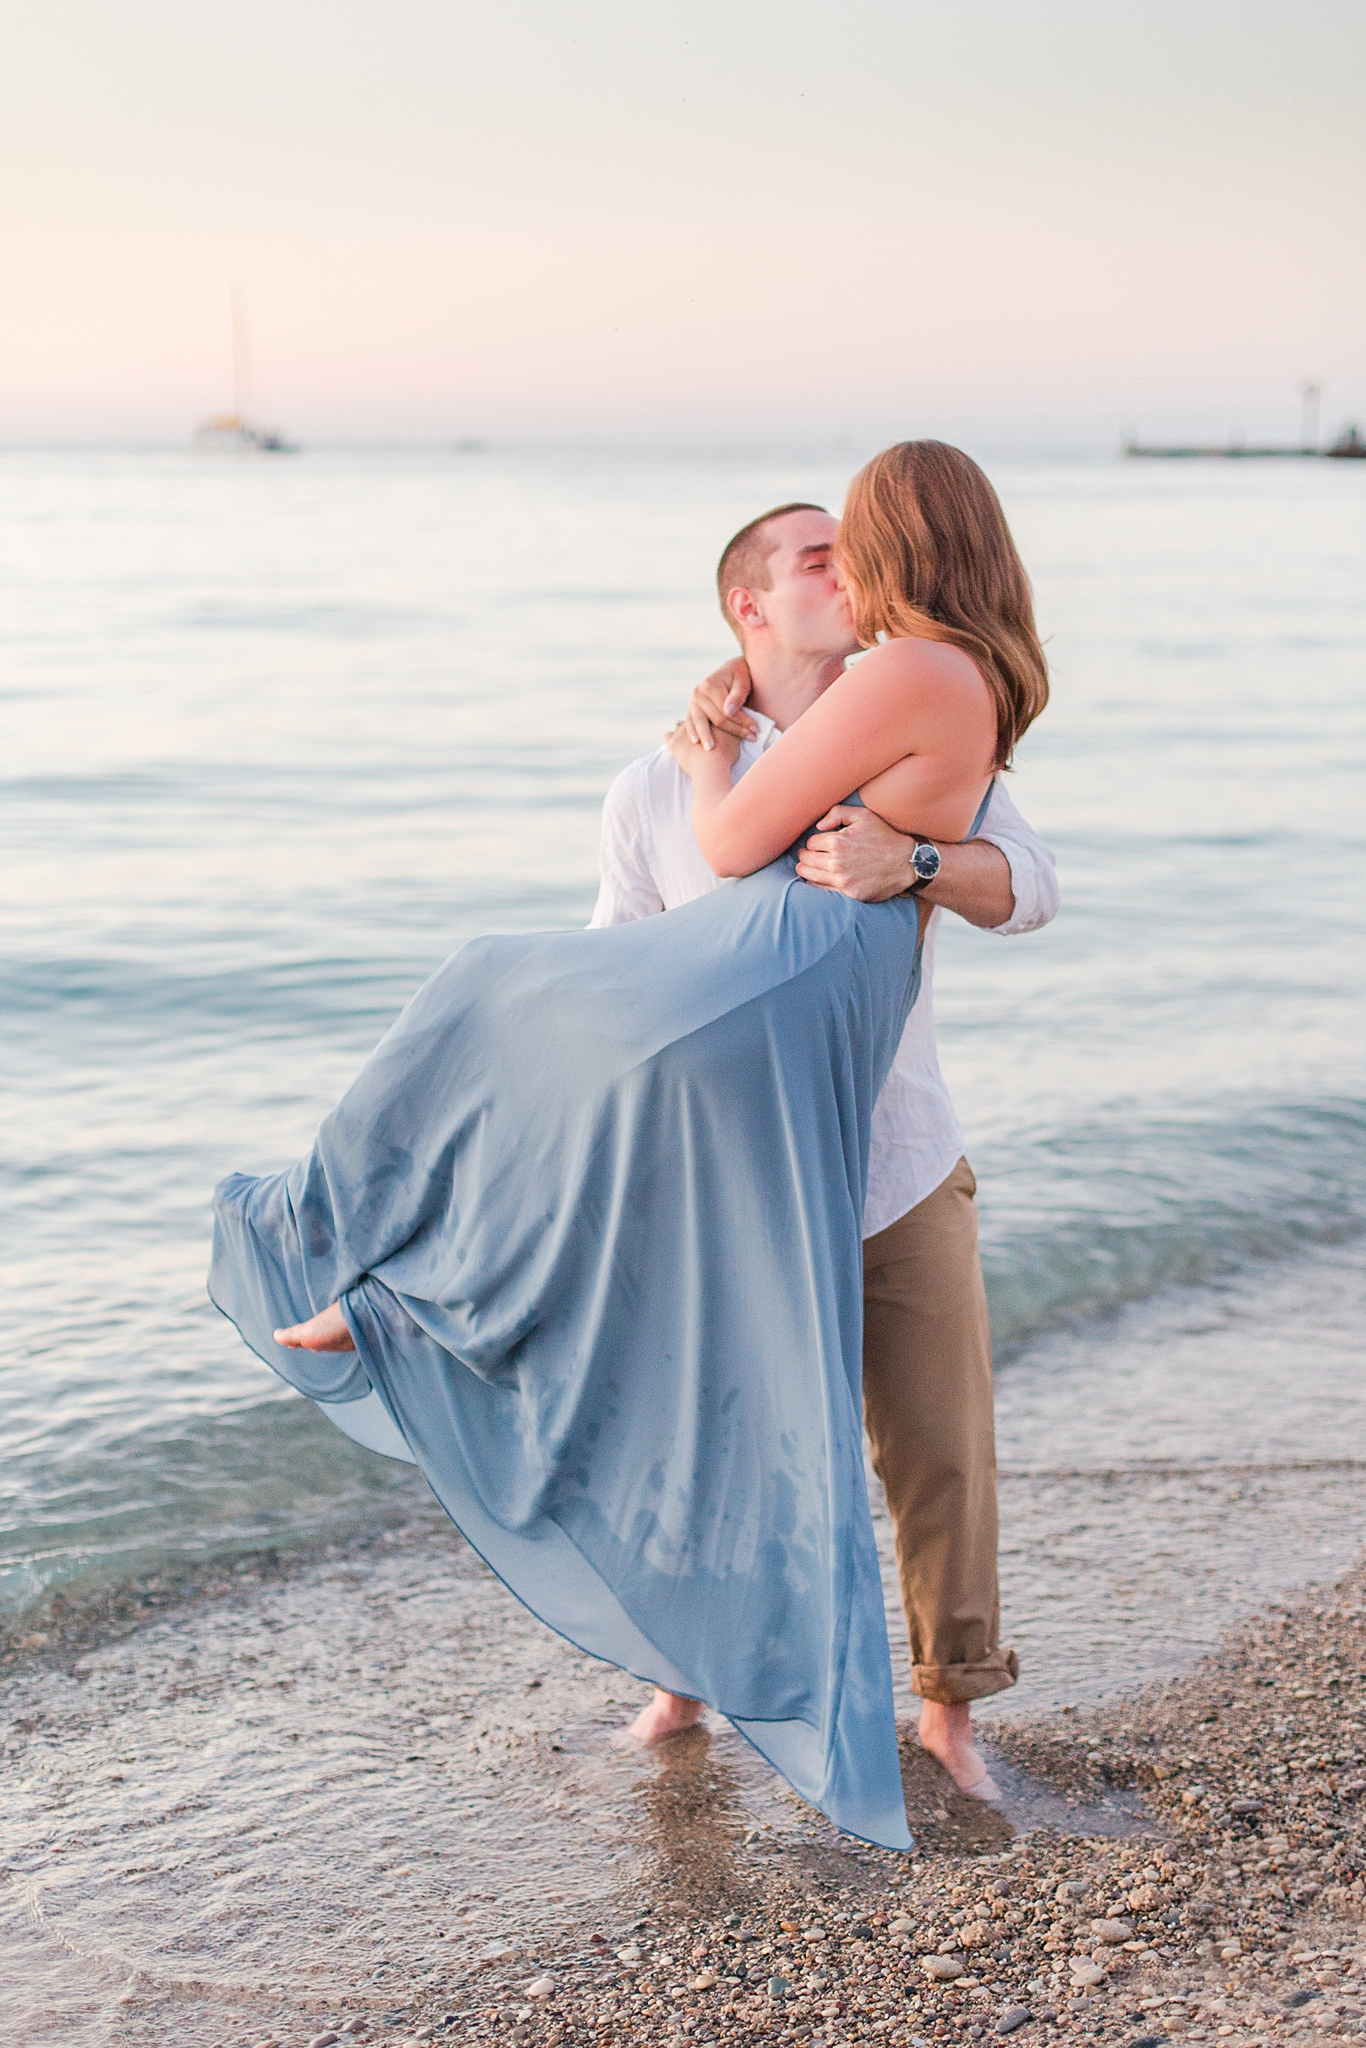 waterfront-lighthouse-engagement-photography-in-charlevoix-mi-by-courtney-carolyn-photography_0019.jpg